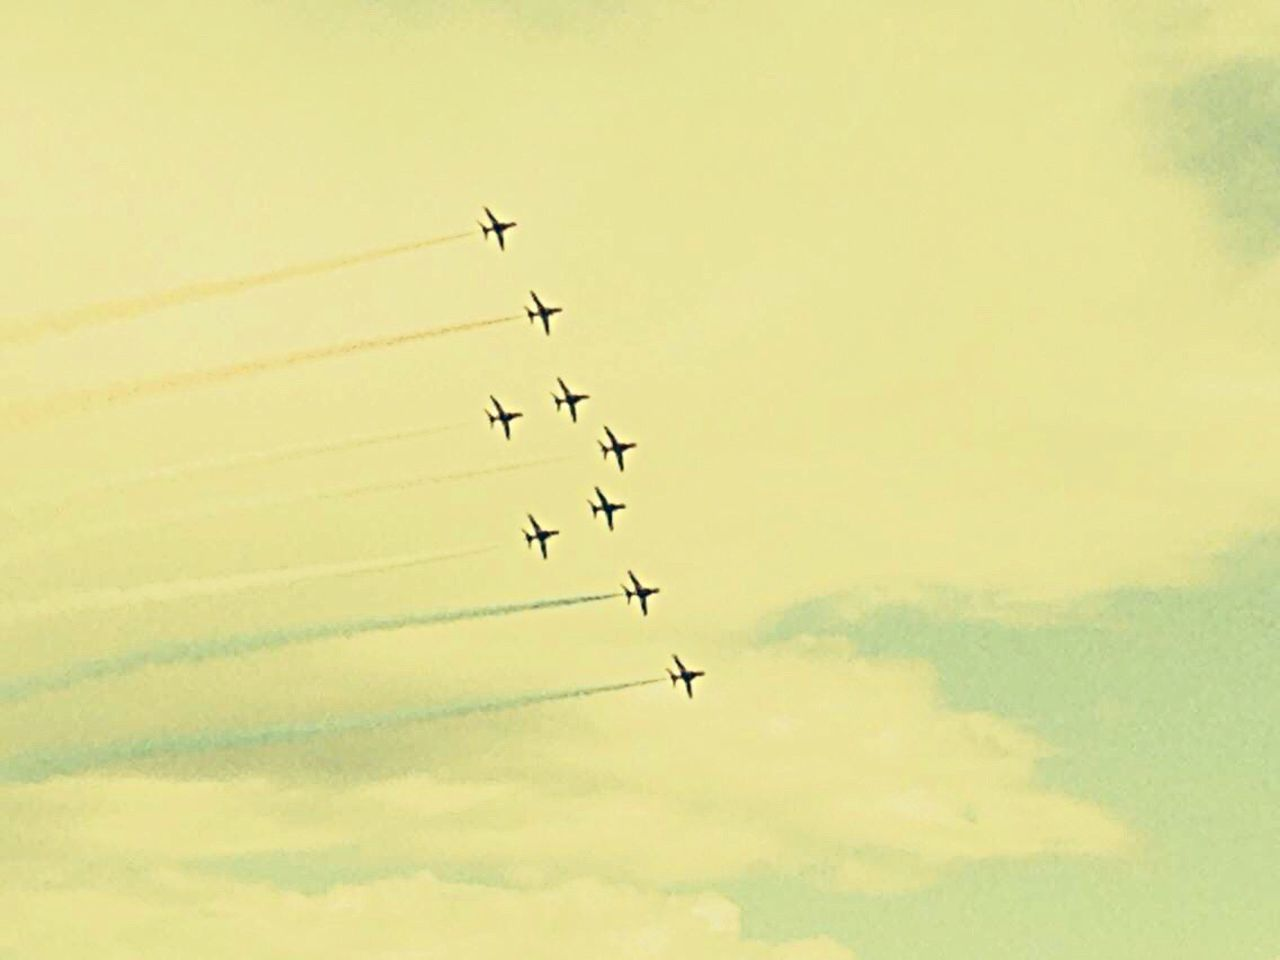 EyeEmNewHere Red arrows planes display teams sky trails colour flight formation cosford Flying Sky Low Angle View Teamwork Airshow Speed Cloud - Sky Fighter Plane Air Vehicle Arrangement Airplane Mid-air Silhouette Motion Outdoors Formation Flying Military Airplane Togetherness No People Day